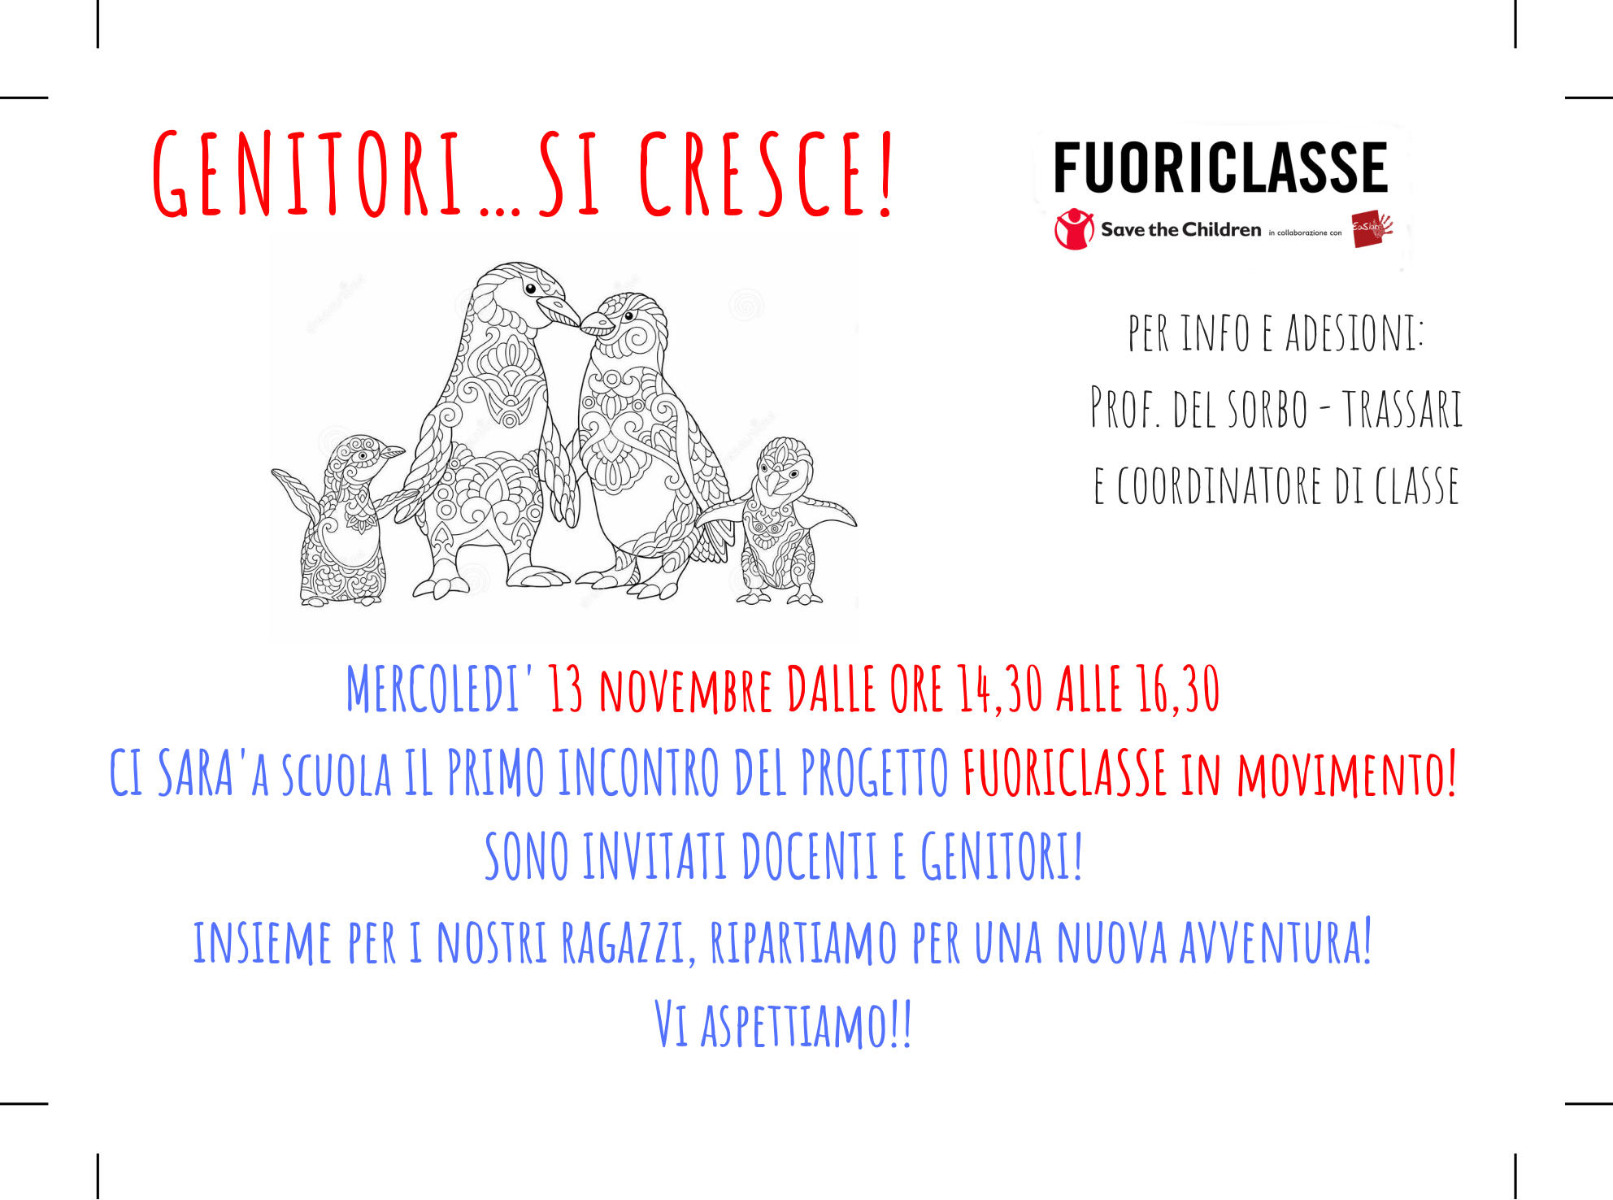 GENITORI…SI CRESCE!      In collaborazione con  EasLab  e  Save the Children